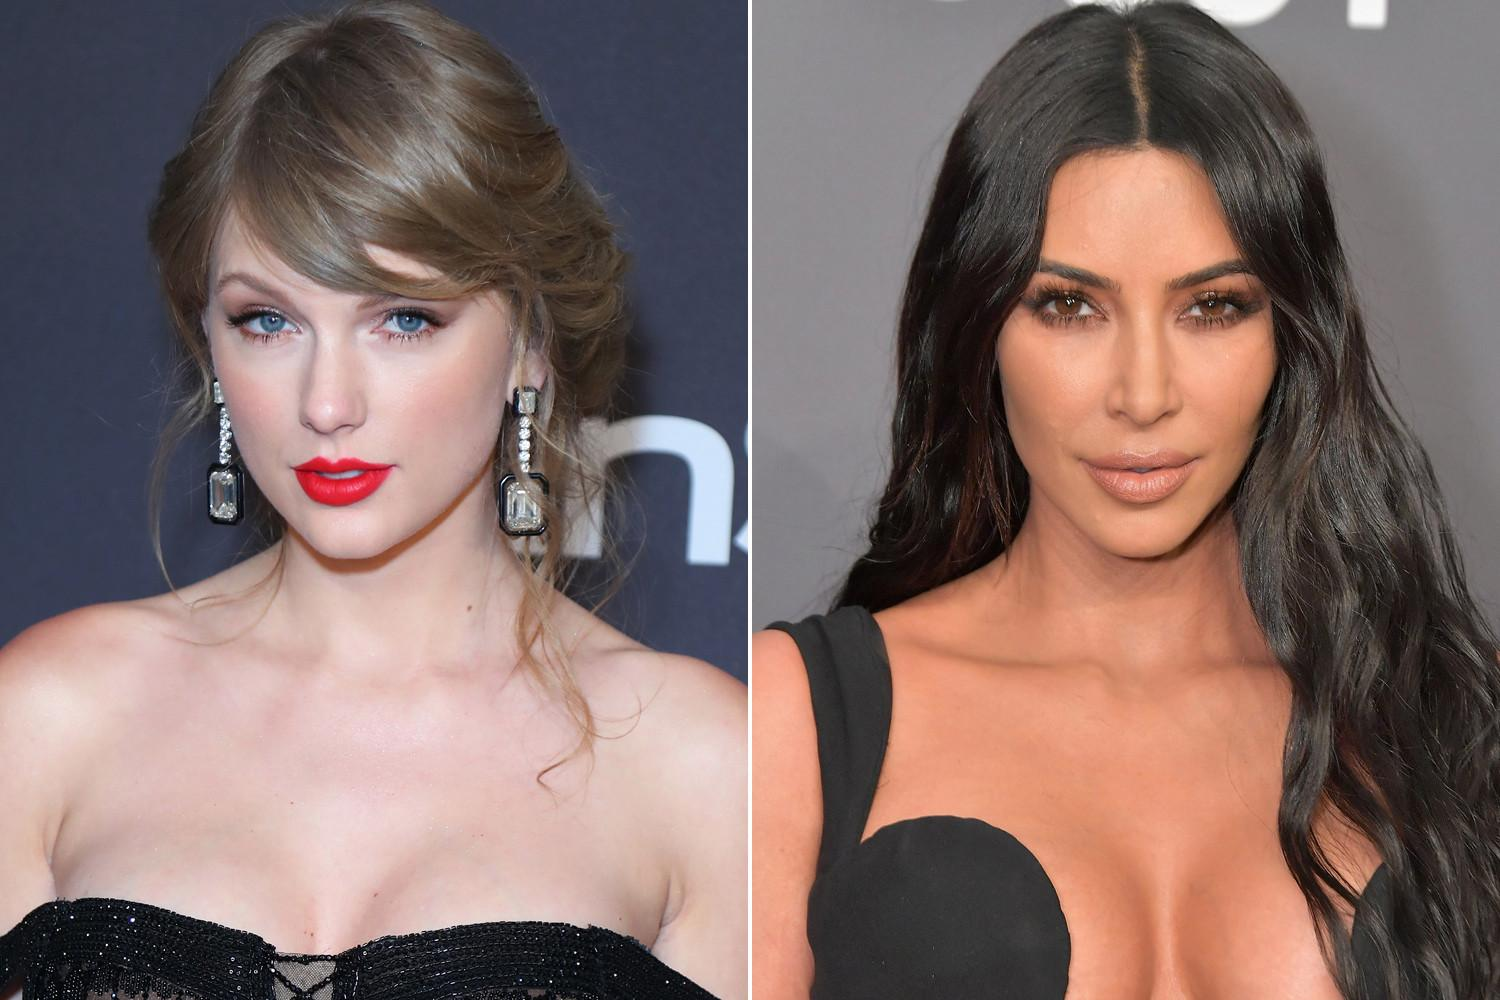 KUWK: Kim Kardashian To Launch New Fragrance On The Same Day Taylor Swift Is Set To Drop New Album - Social Media Is Pretty Irritated